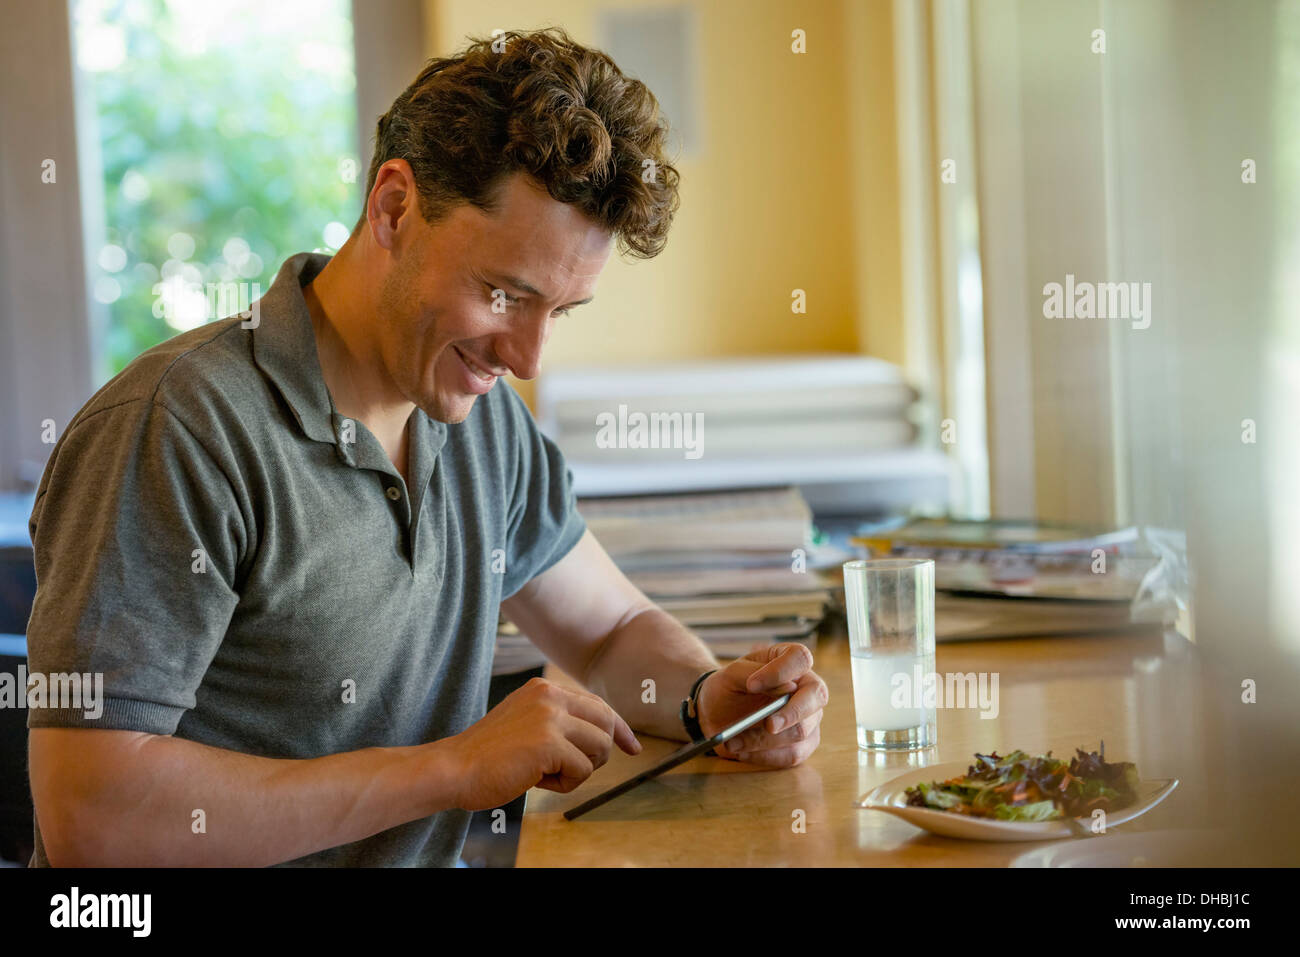 A person sitting alone in a cafe. A  man using a digital tablet. Stock Photo